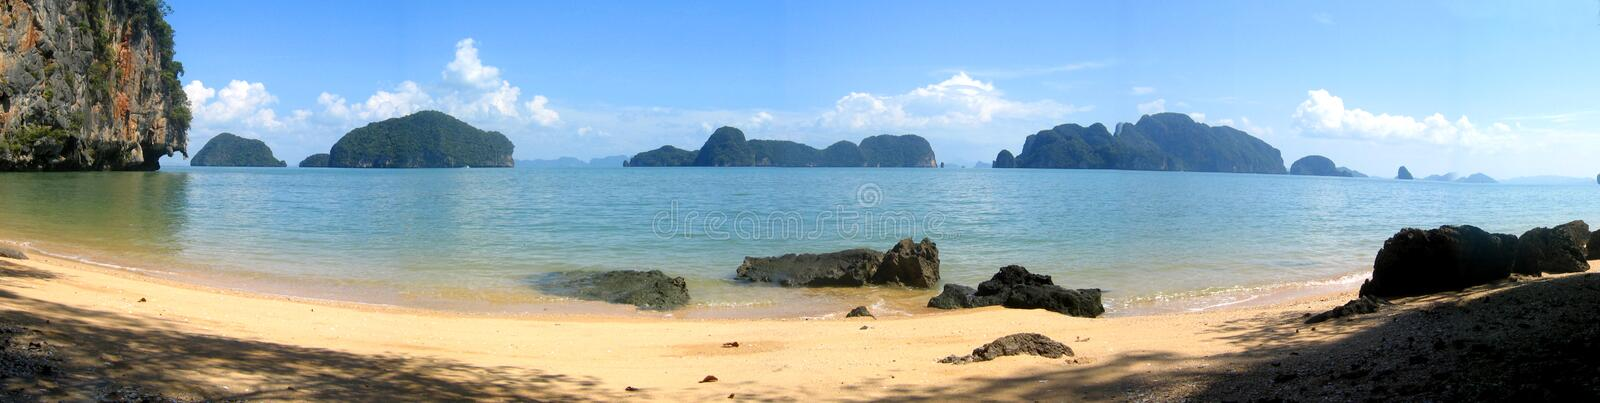 Panorama do louro de Phang Nga, Tailândia foto de stock